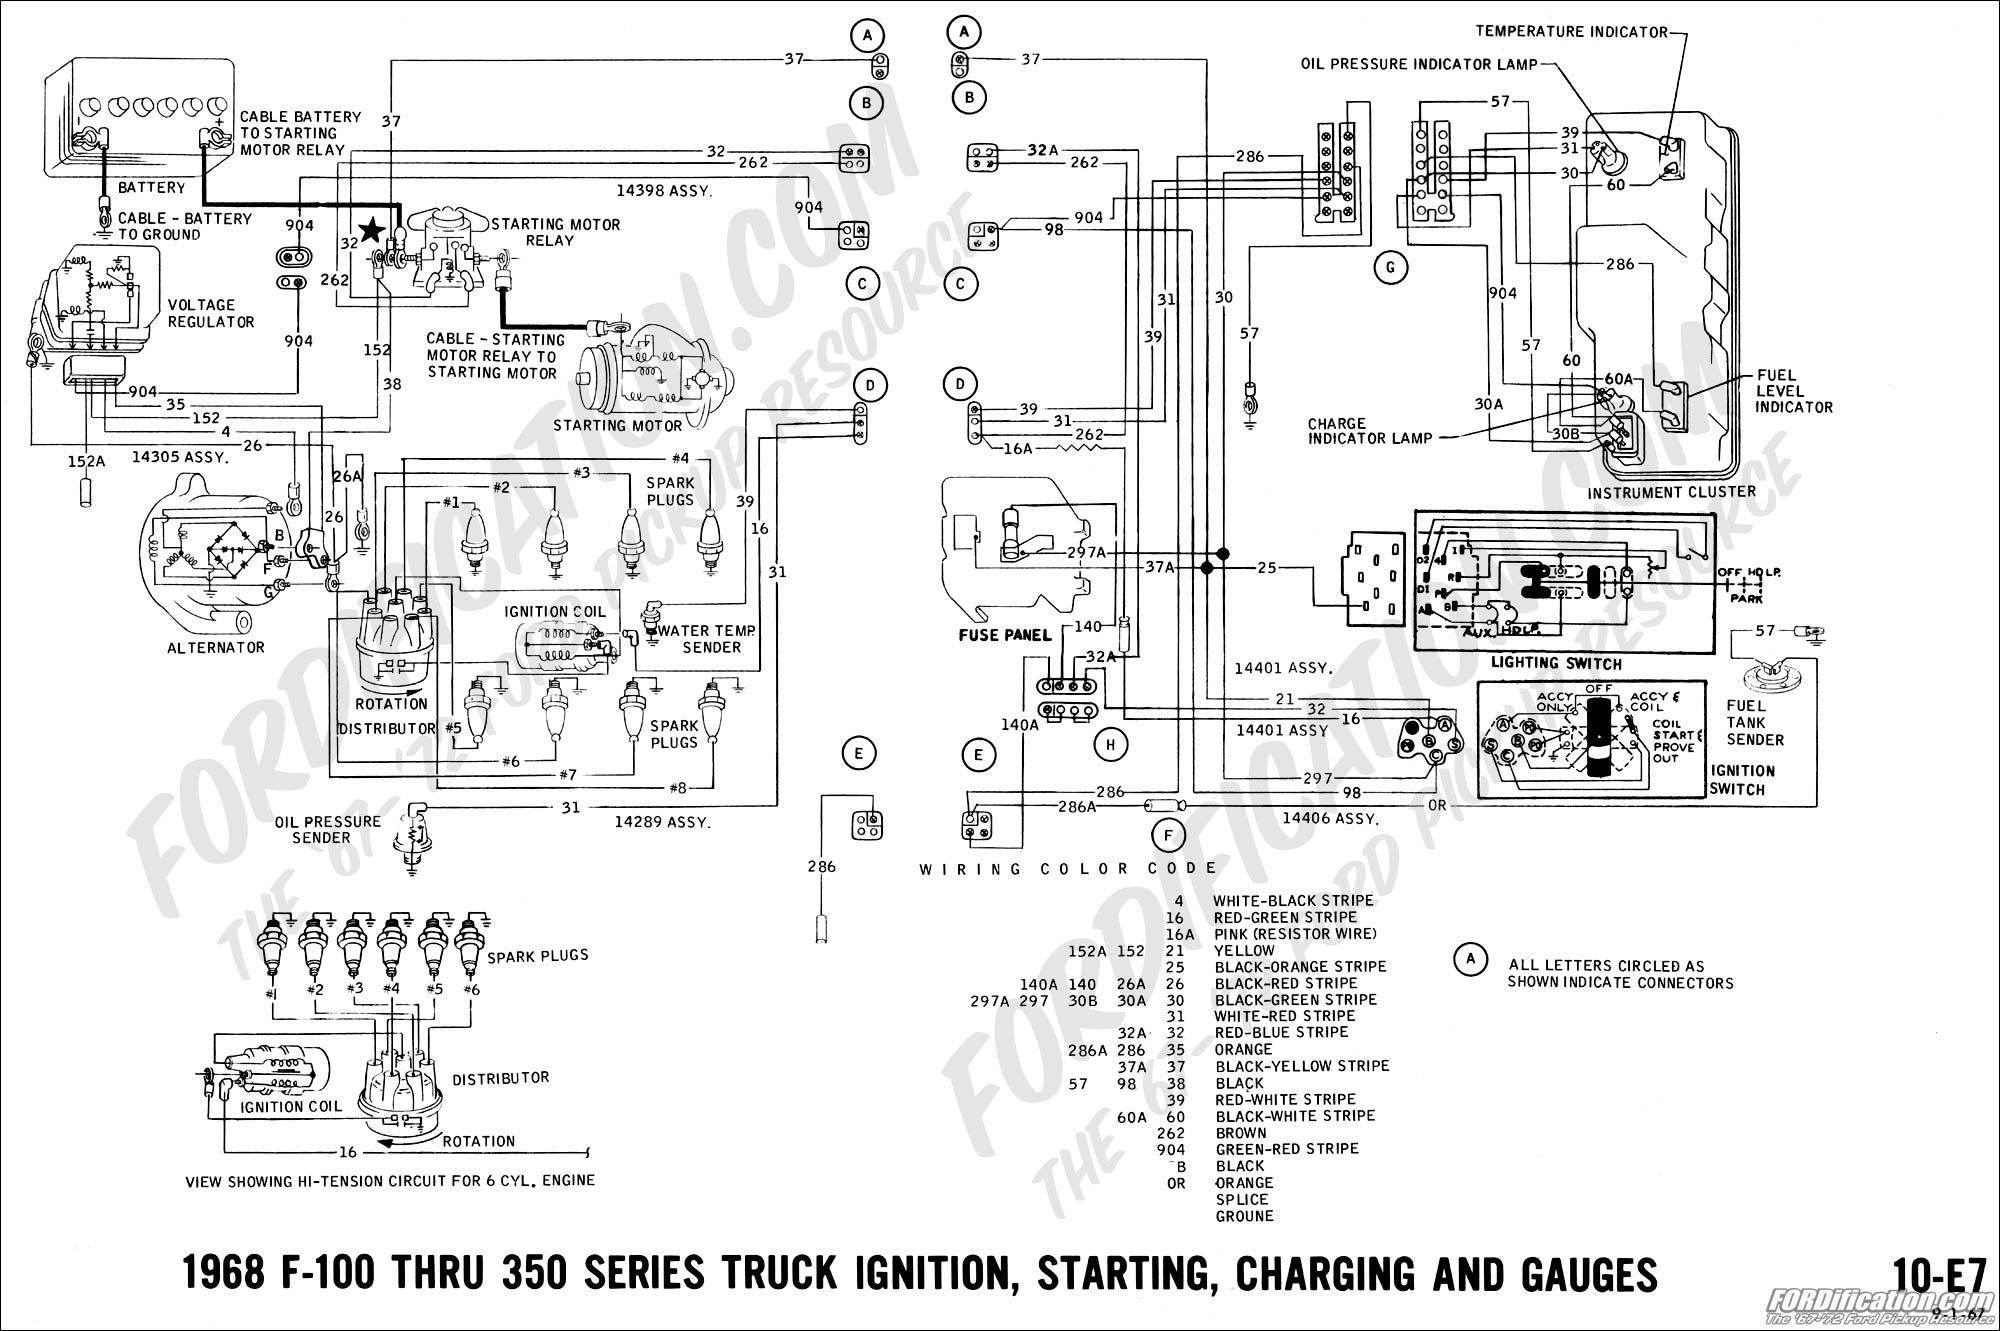 68 09 ford truck technical drawings and schematics section h wiring lincoln electric wiring diagram at bakdesigns.co